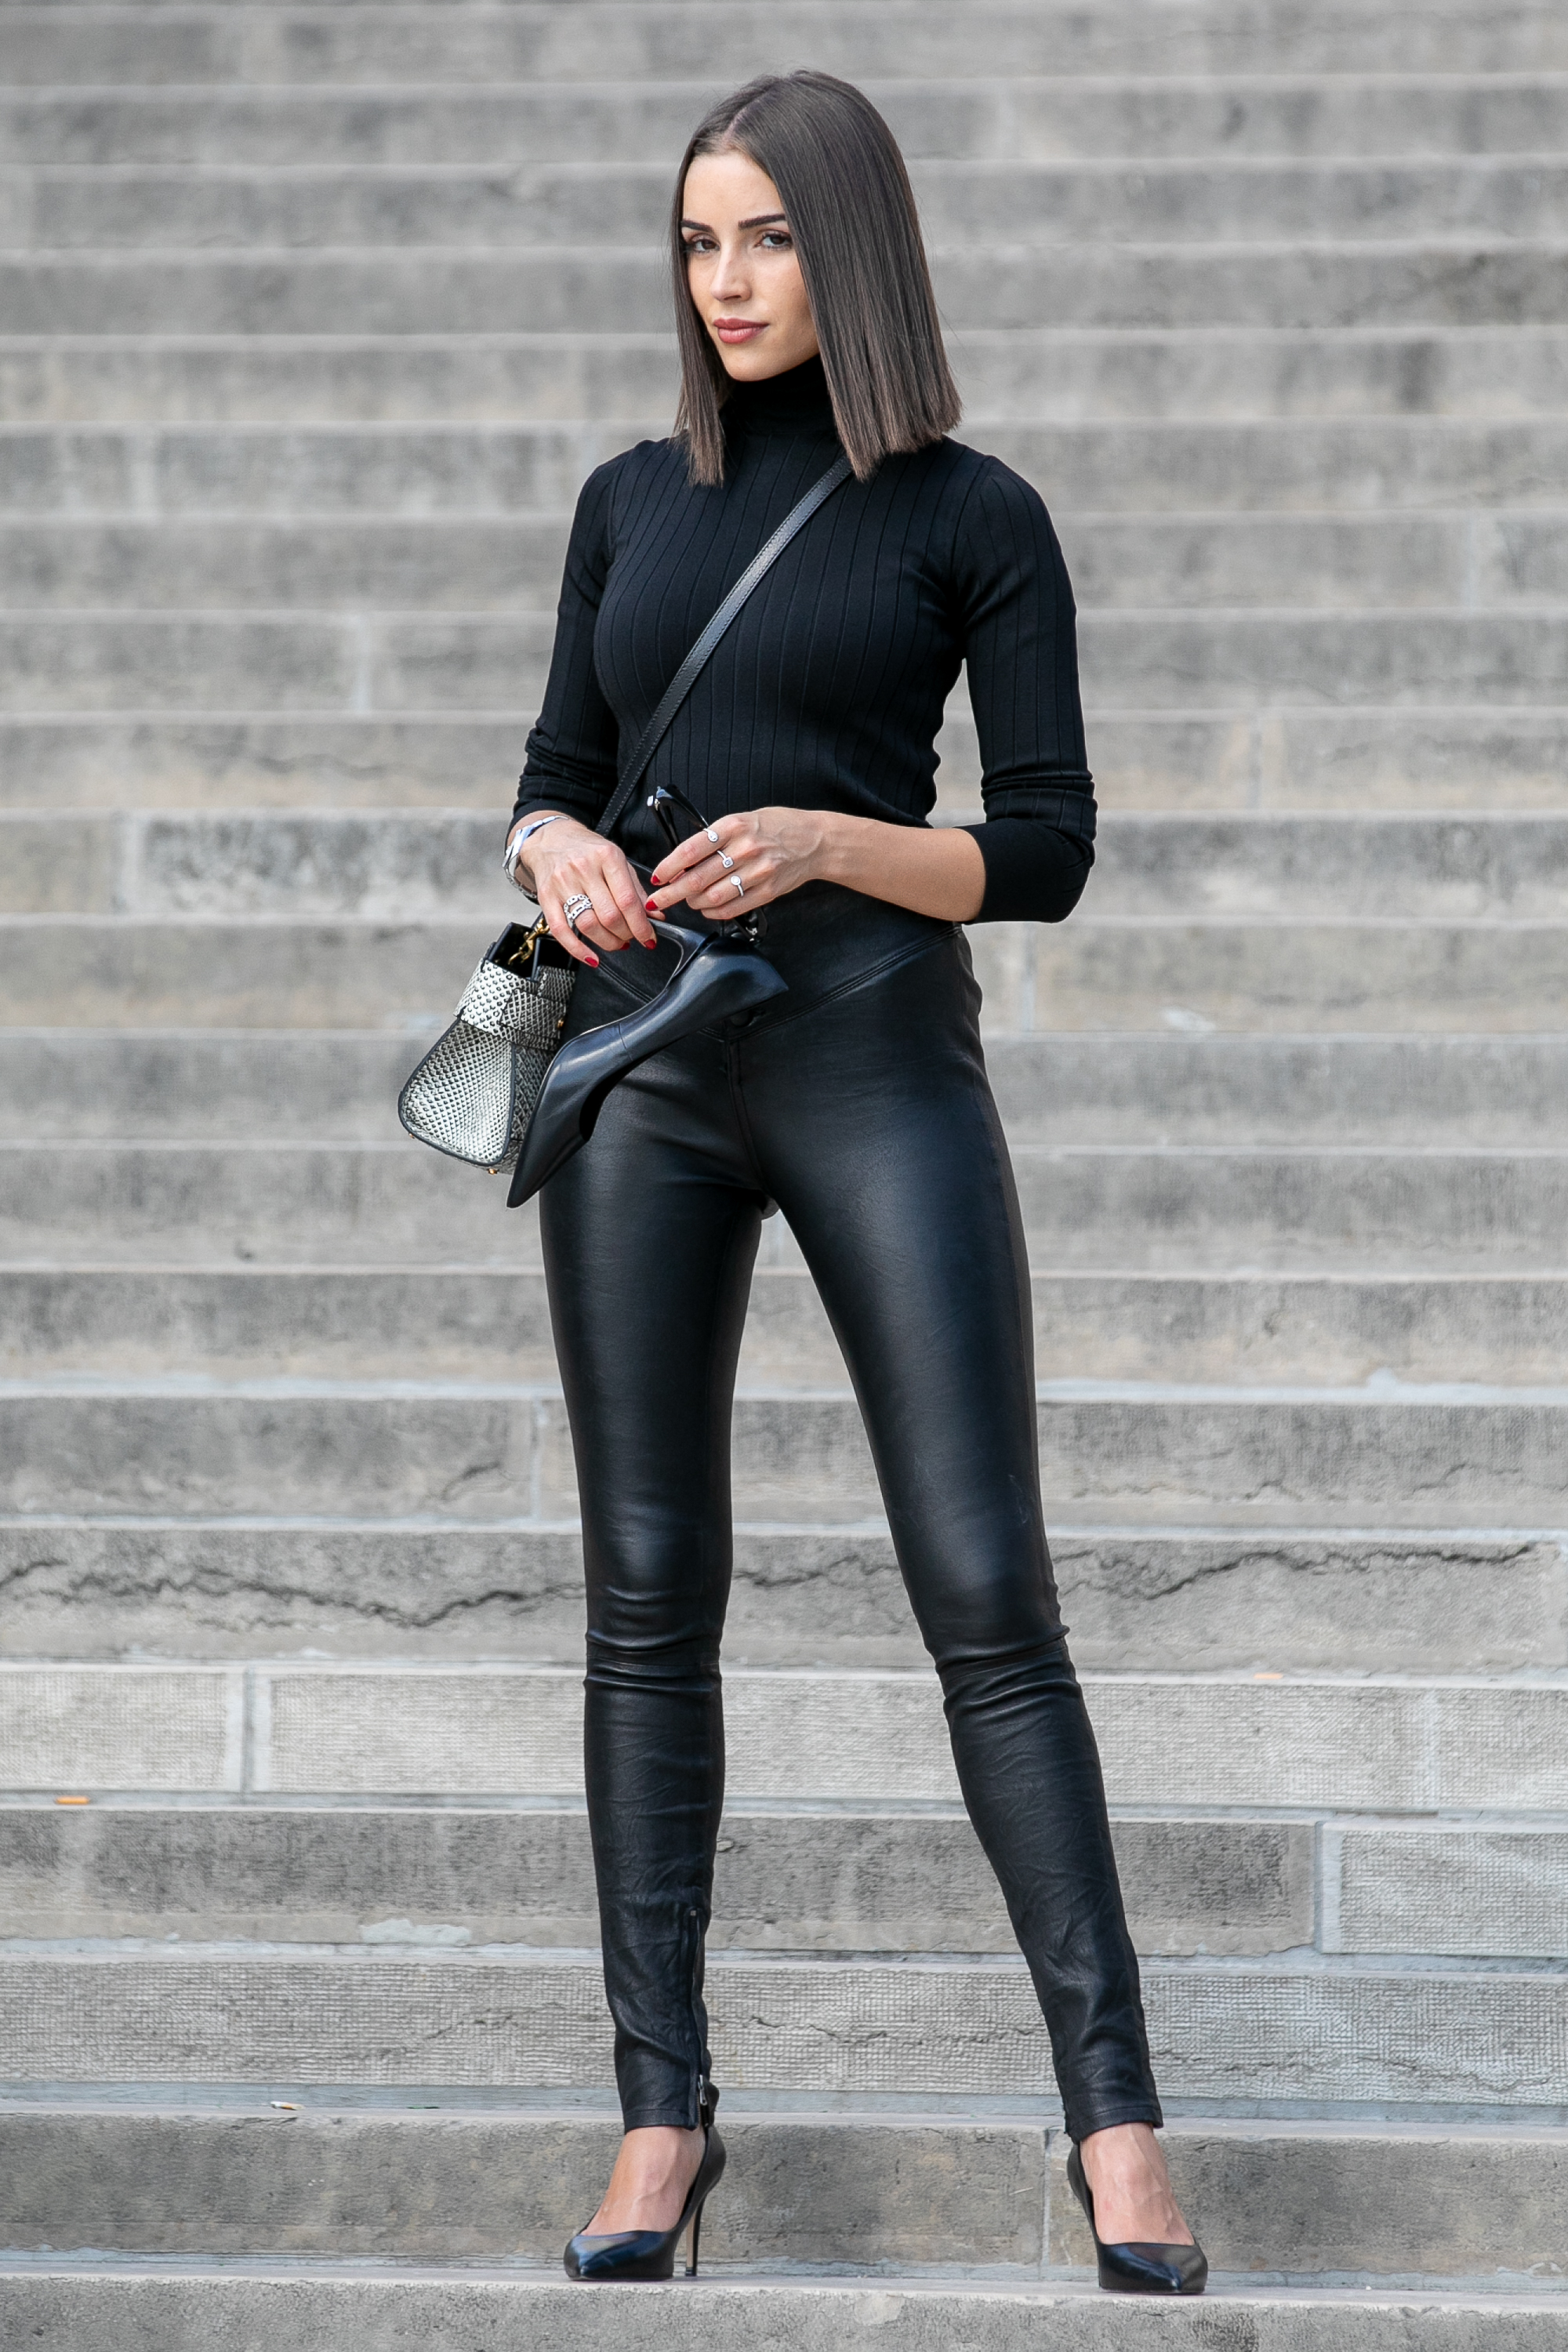 Olivia Culpo Sighting In Paris - September 20, 2018